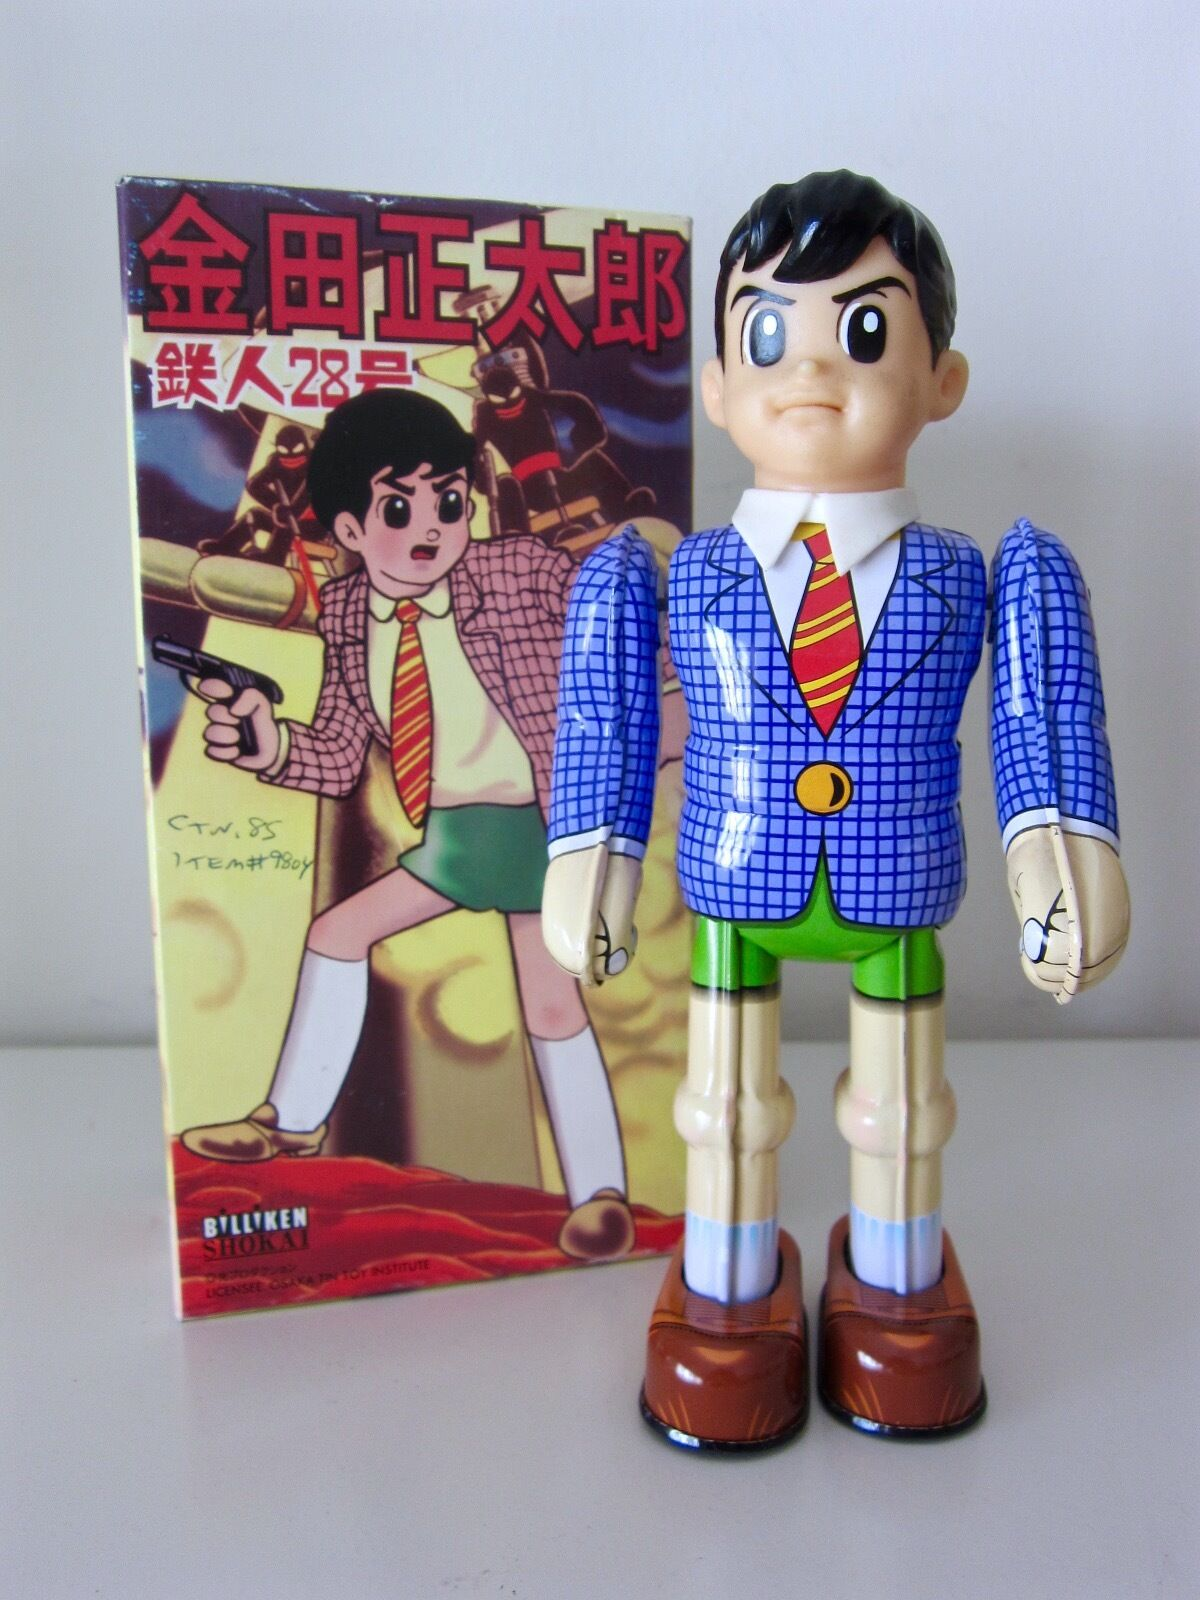 SHOTARO KANEDA (JIMMY SPARKS) TETSUJIN 28. BILLIKIN SHOKAI. TIN WIND UP. 1997